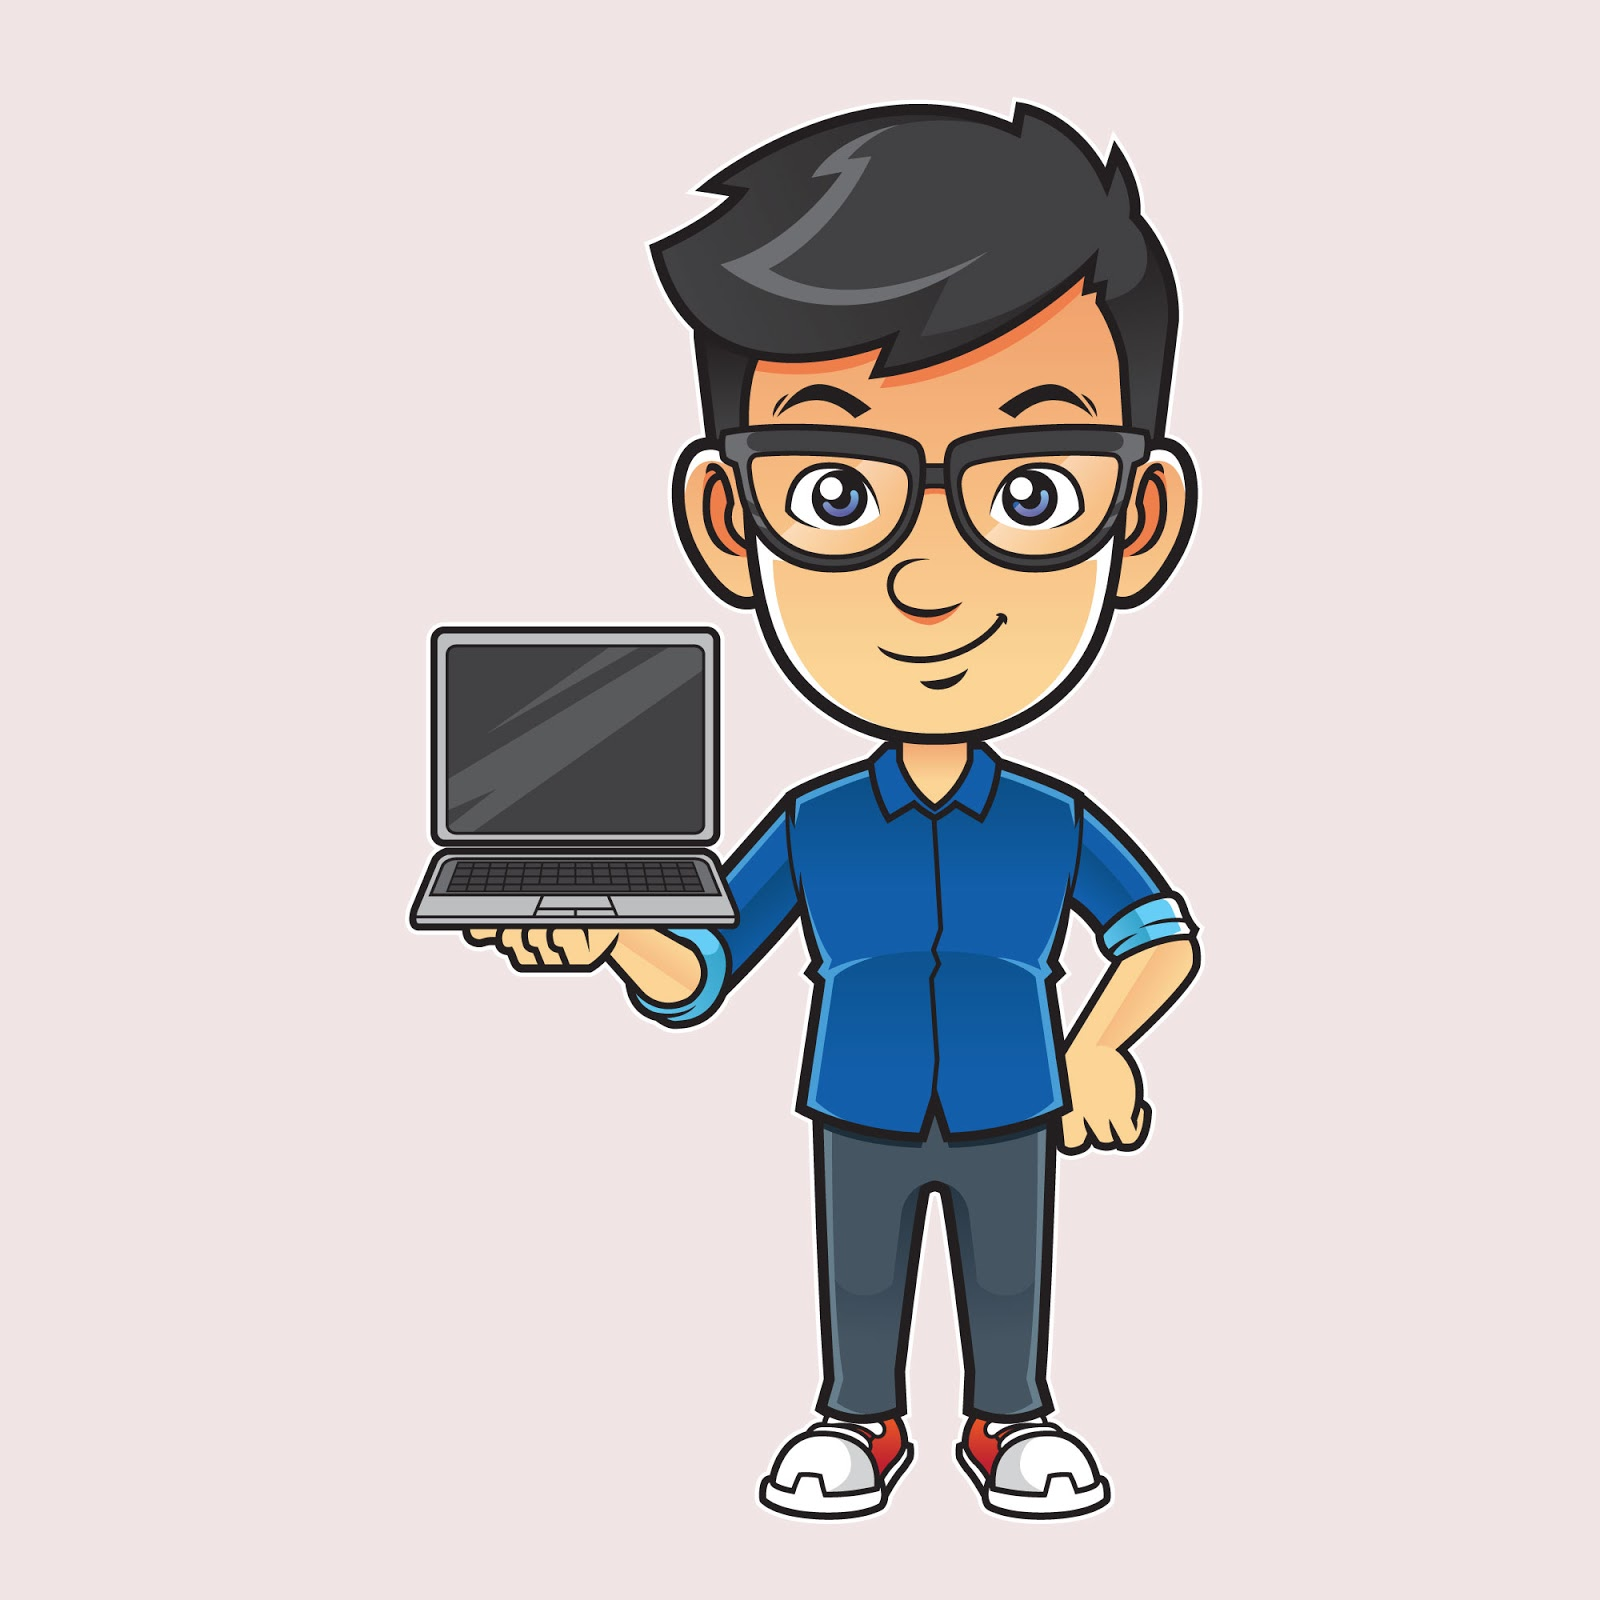 Geek Sales Guy Illustration Free Download Vector CDR, AI, EPS and PNG Formats